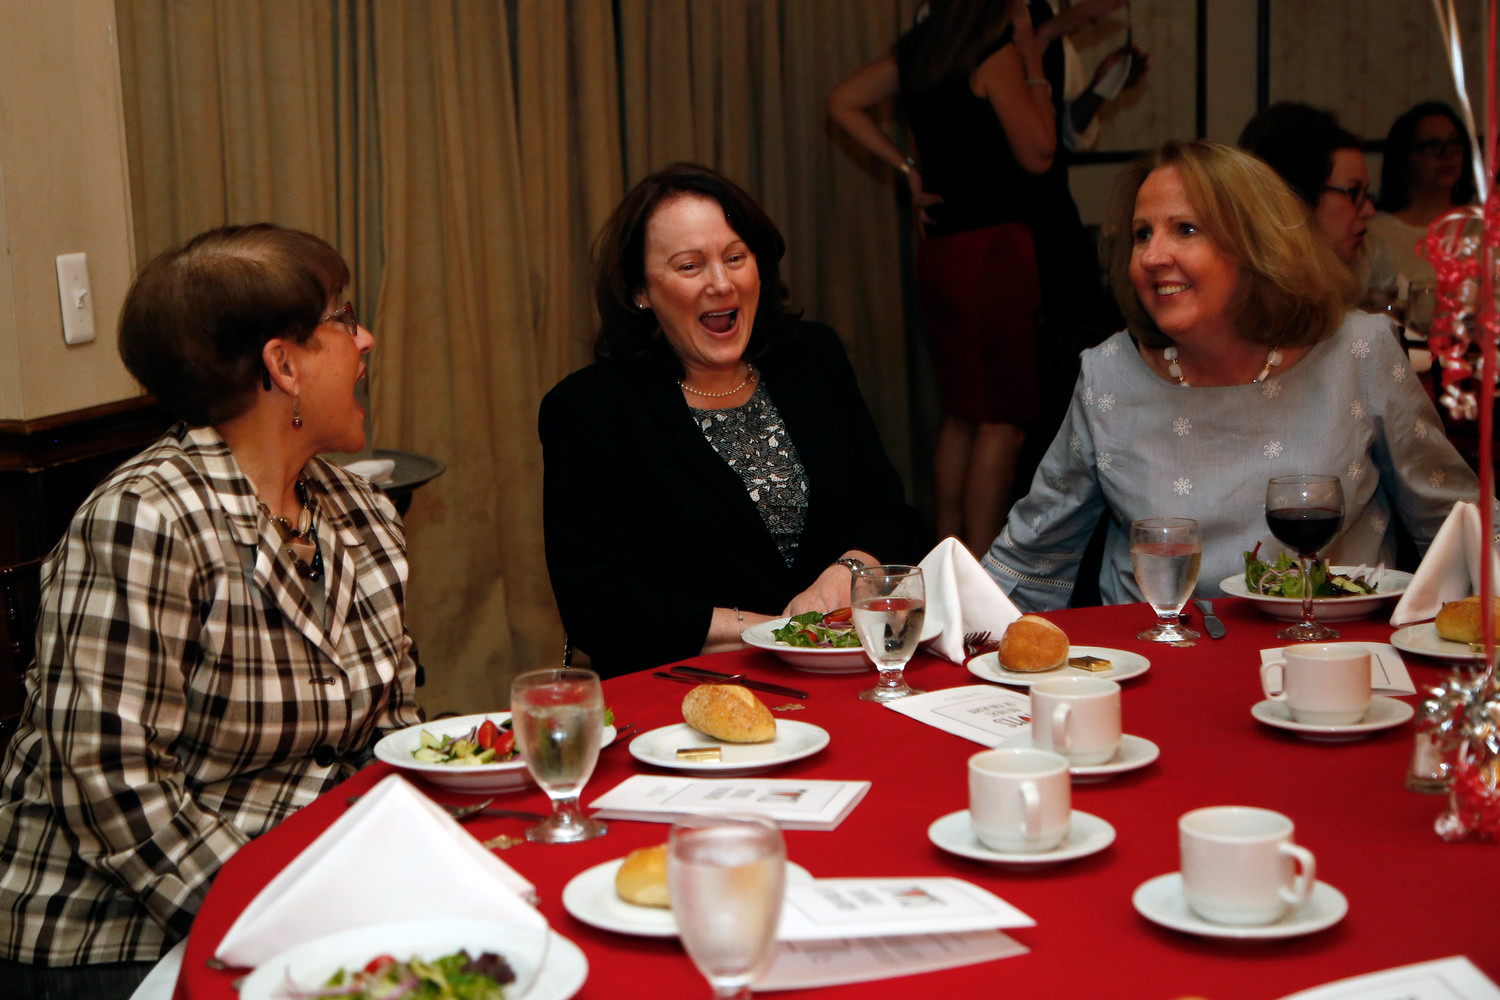 Peggy Urick, left, Joanne Tesoriero and Annmarie Pardo shared a laugh at the dinner.